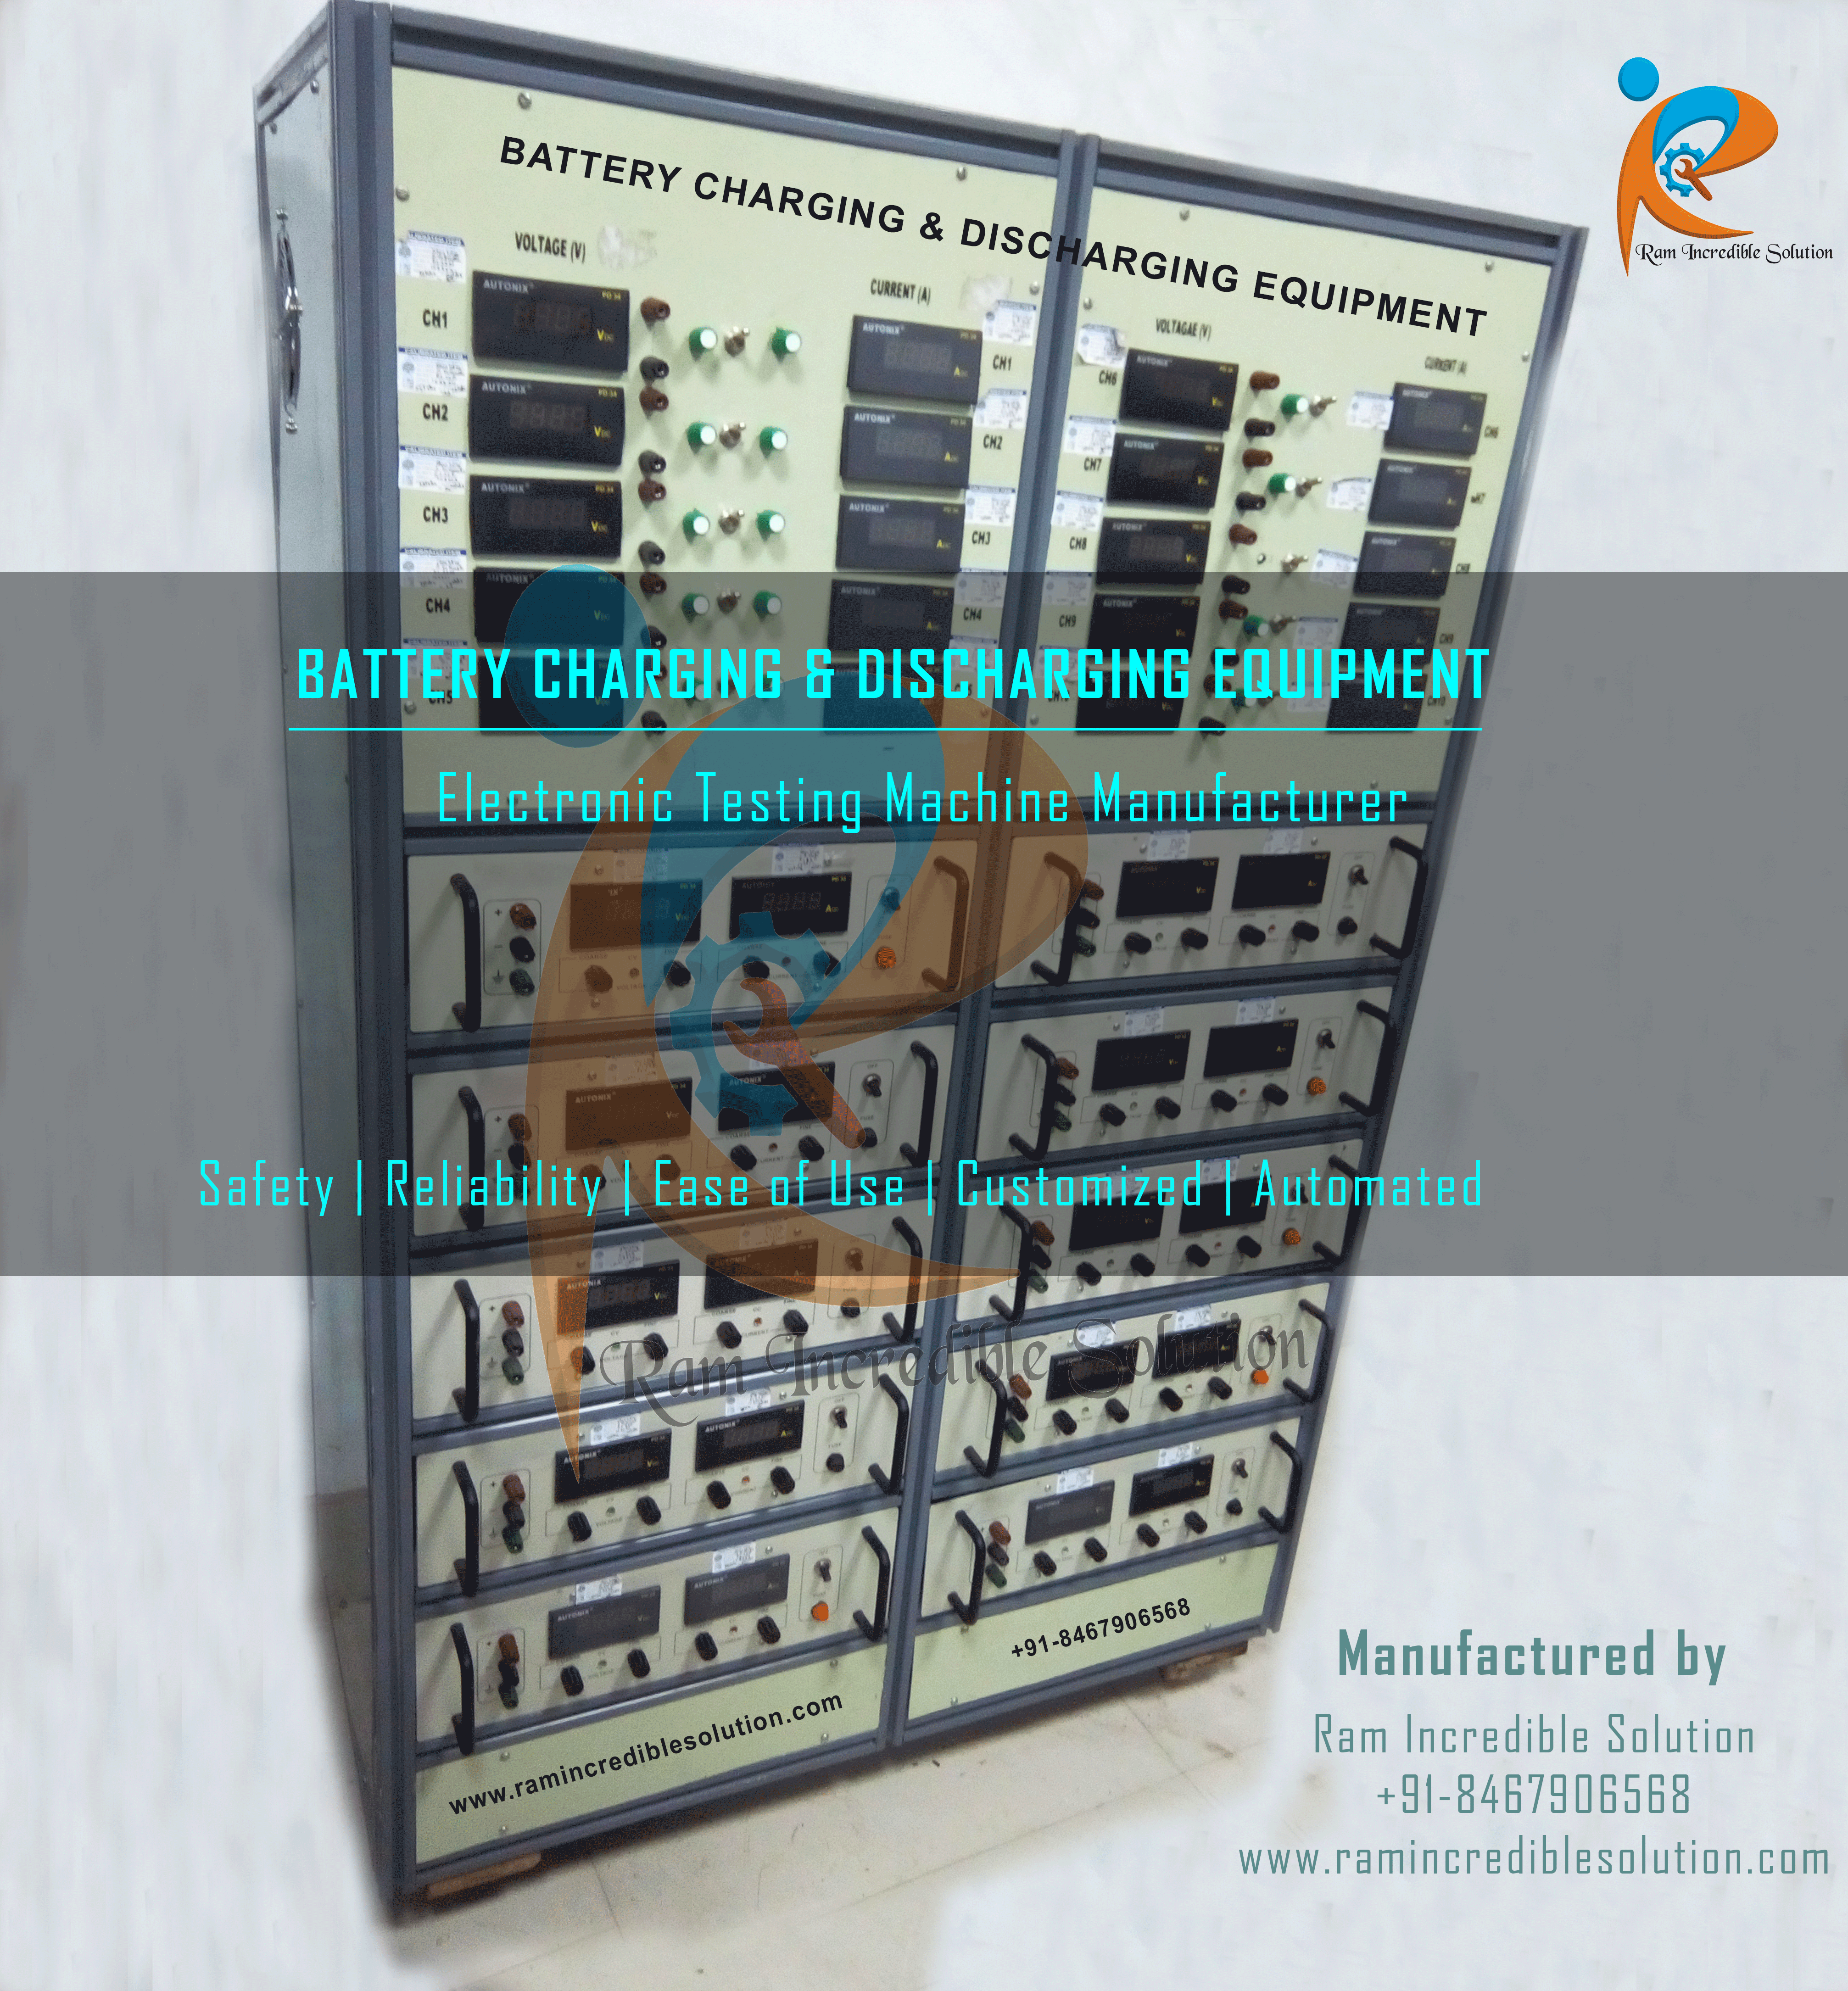 Get latest info on Electrical & Electronic Test Equipments ...